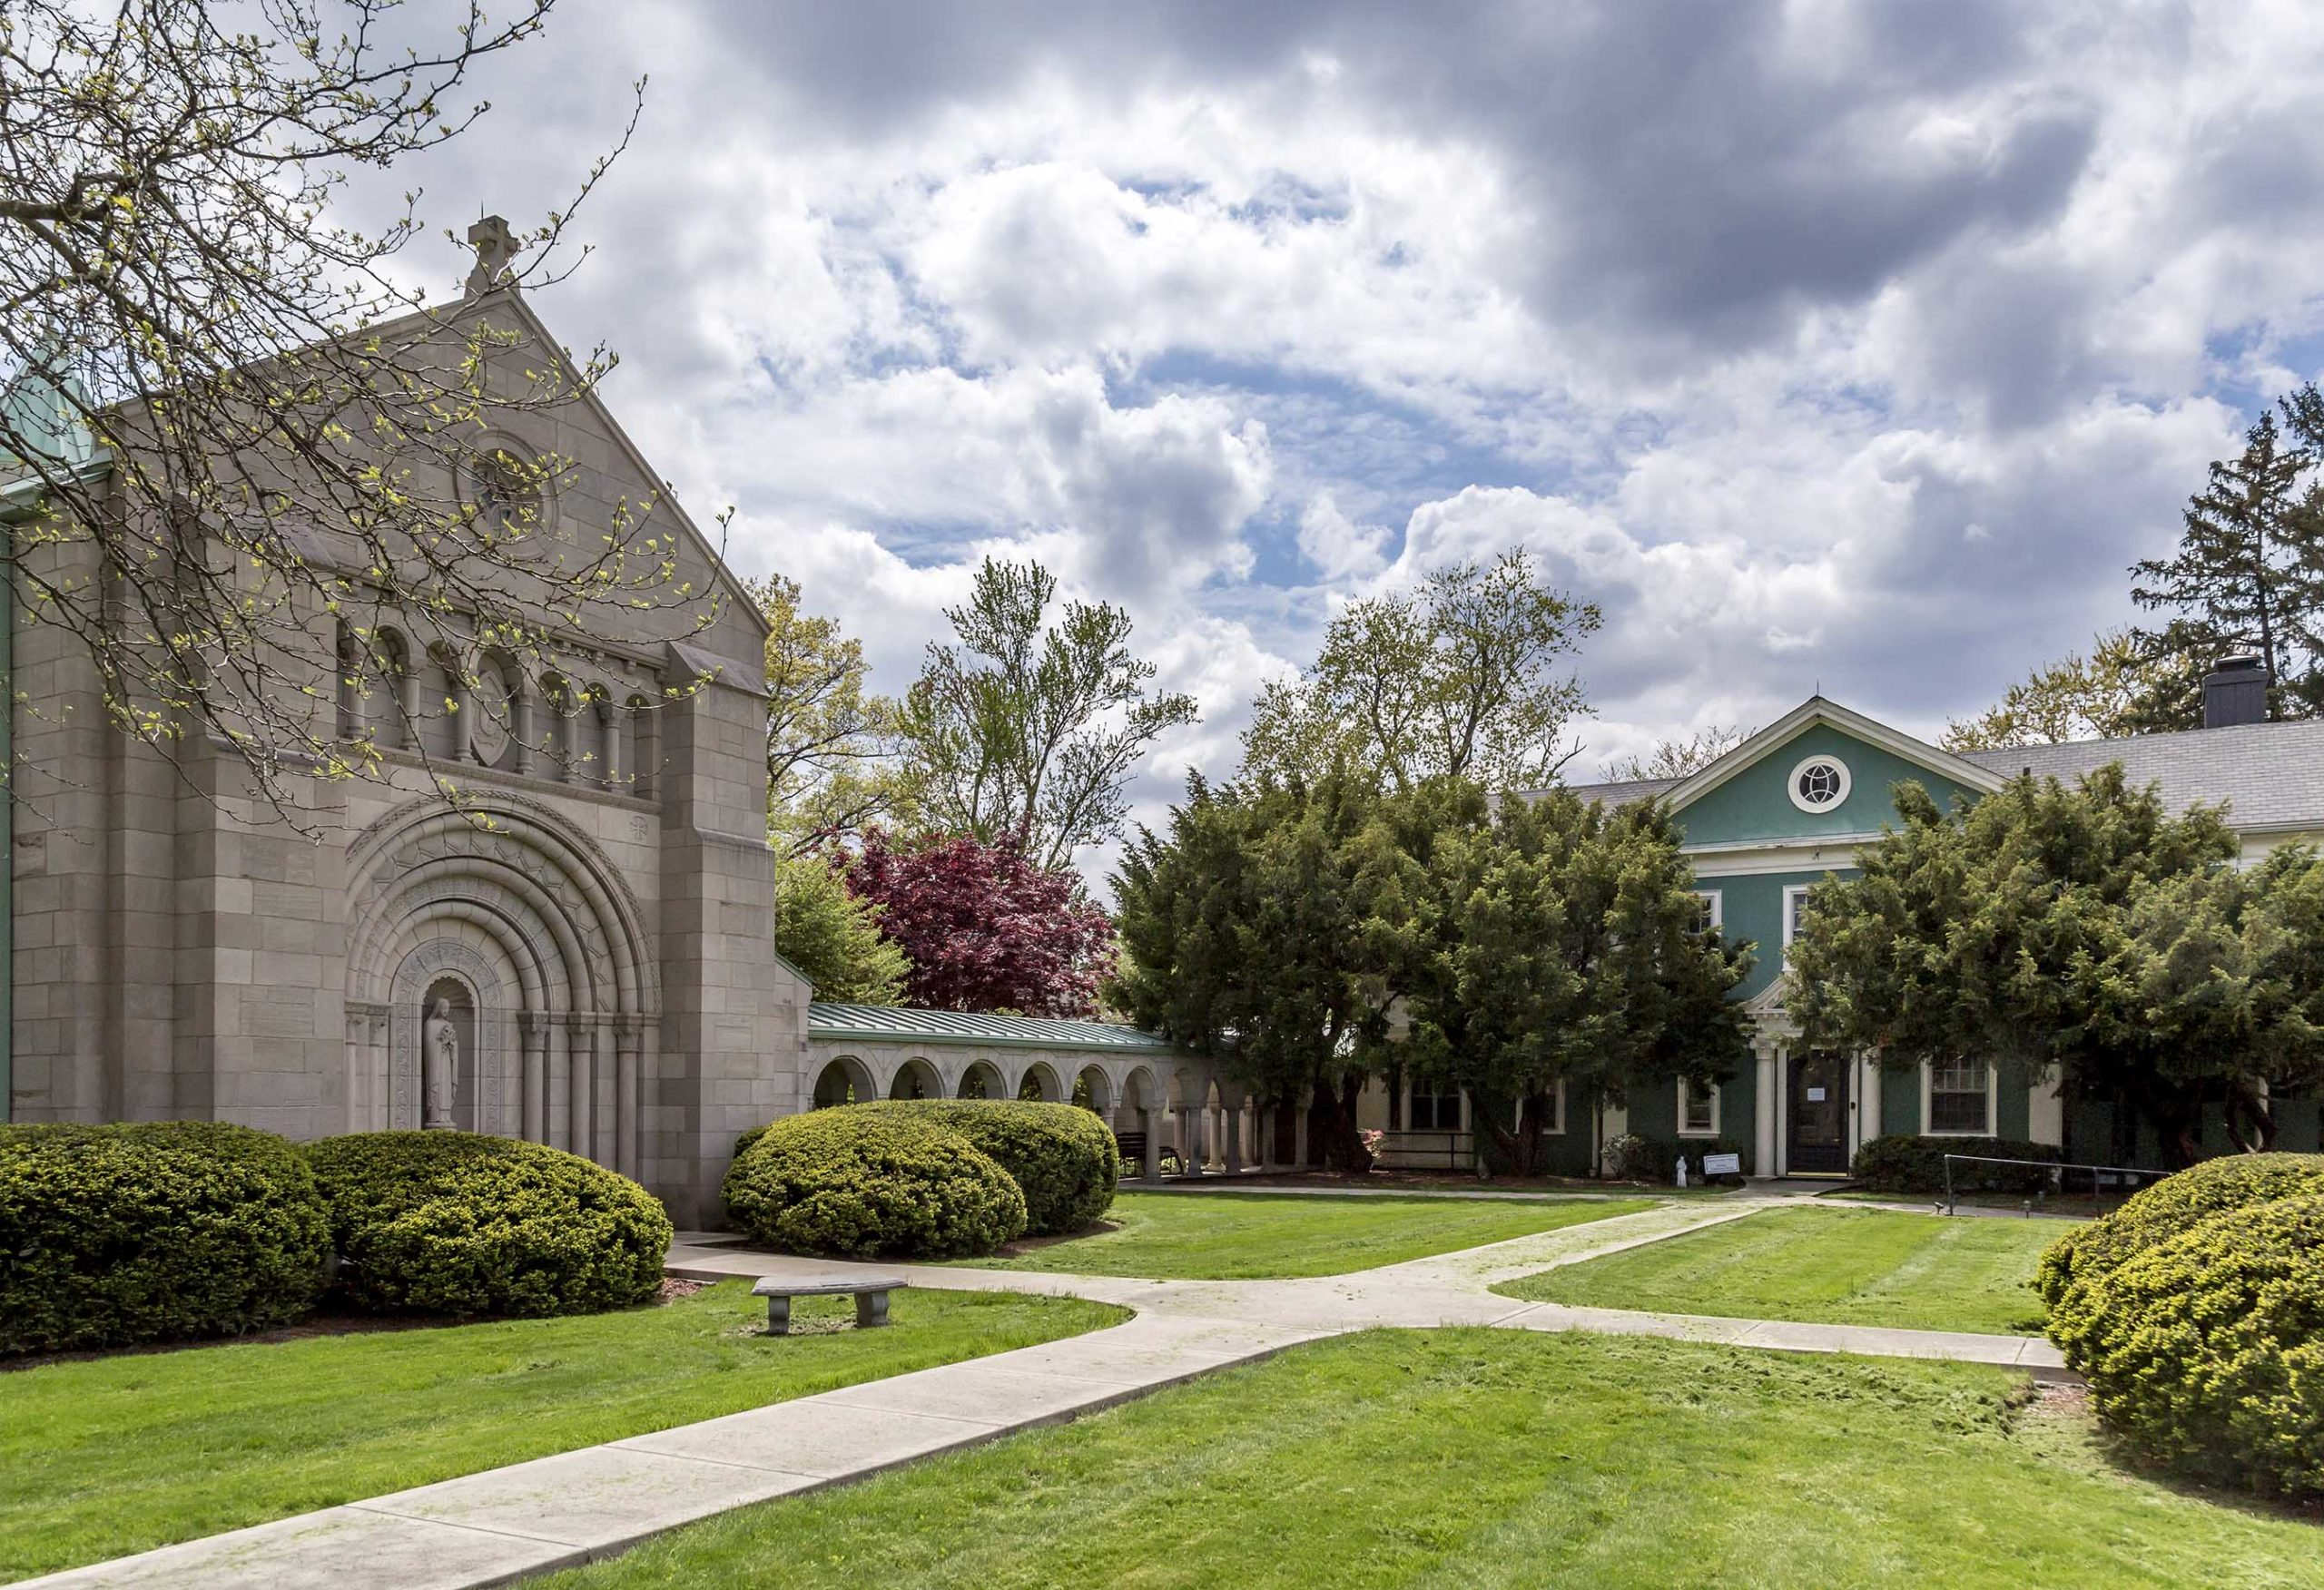 St. Therese's Retreat Center